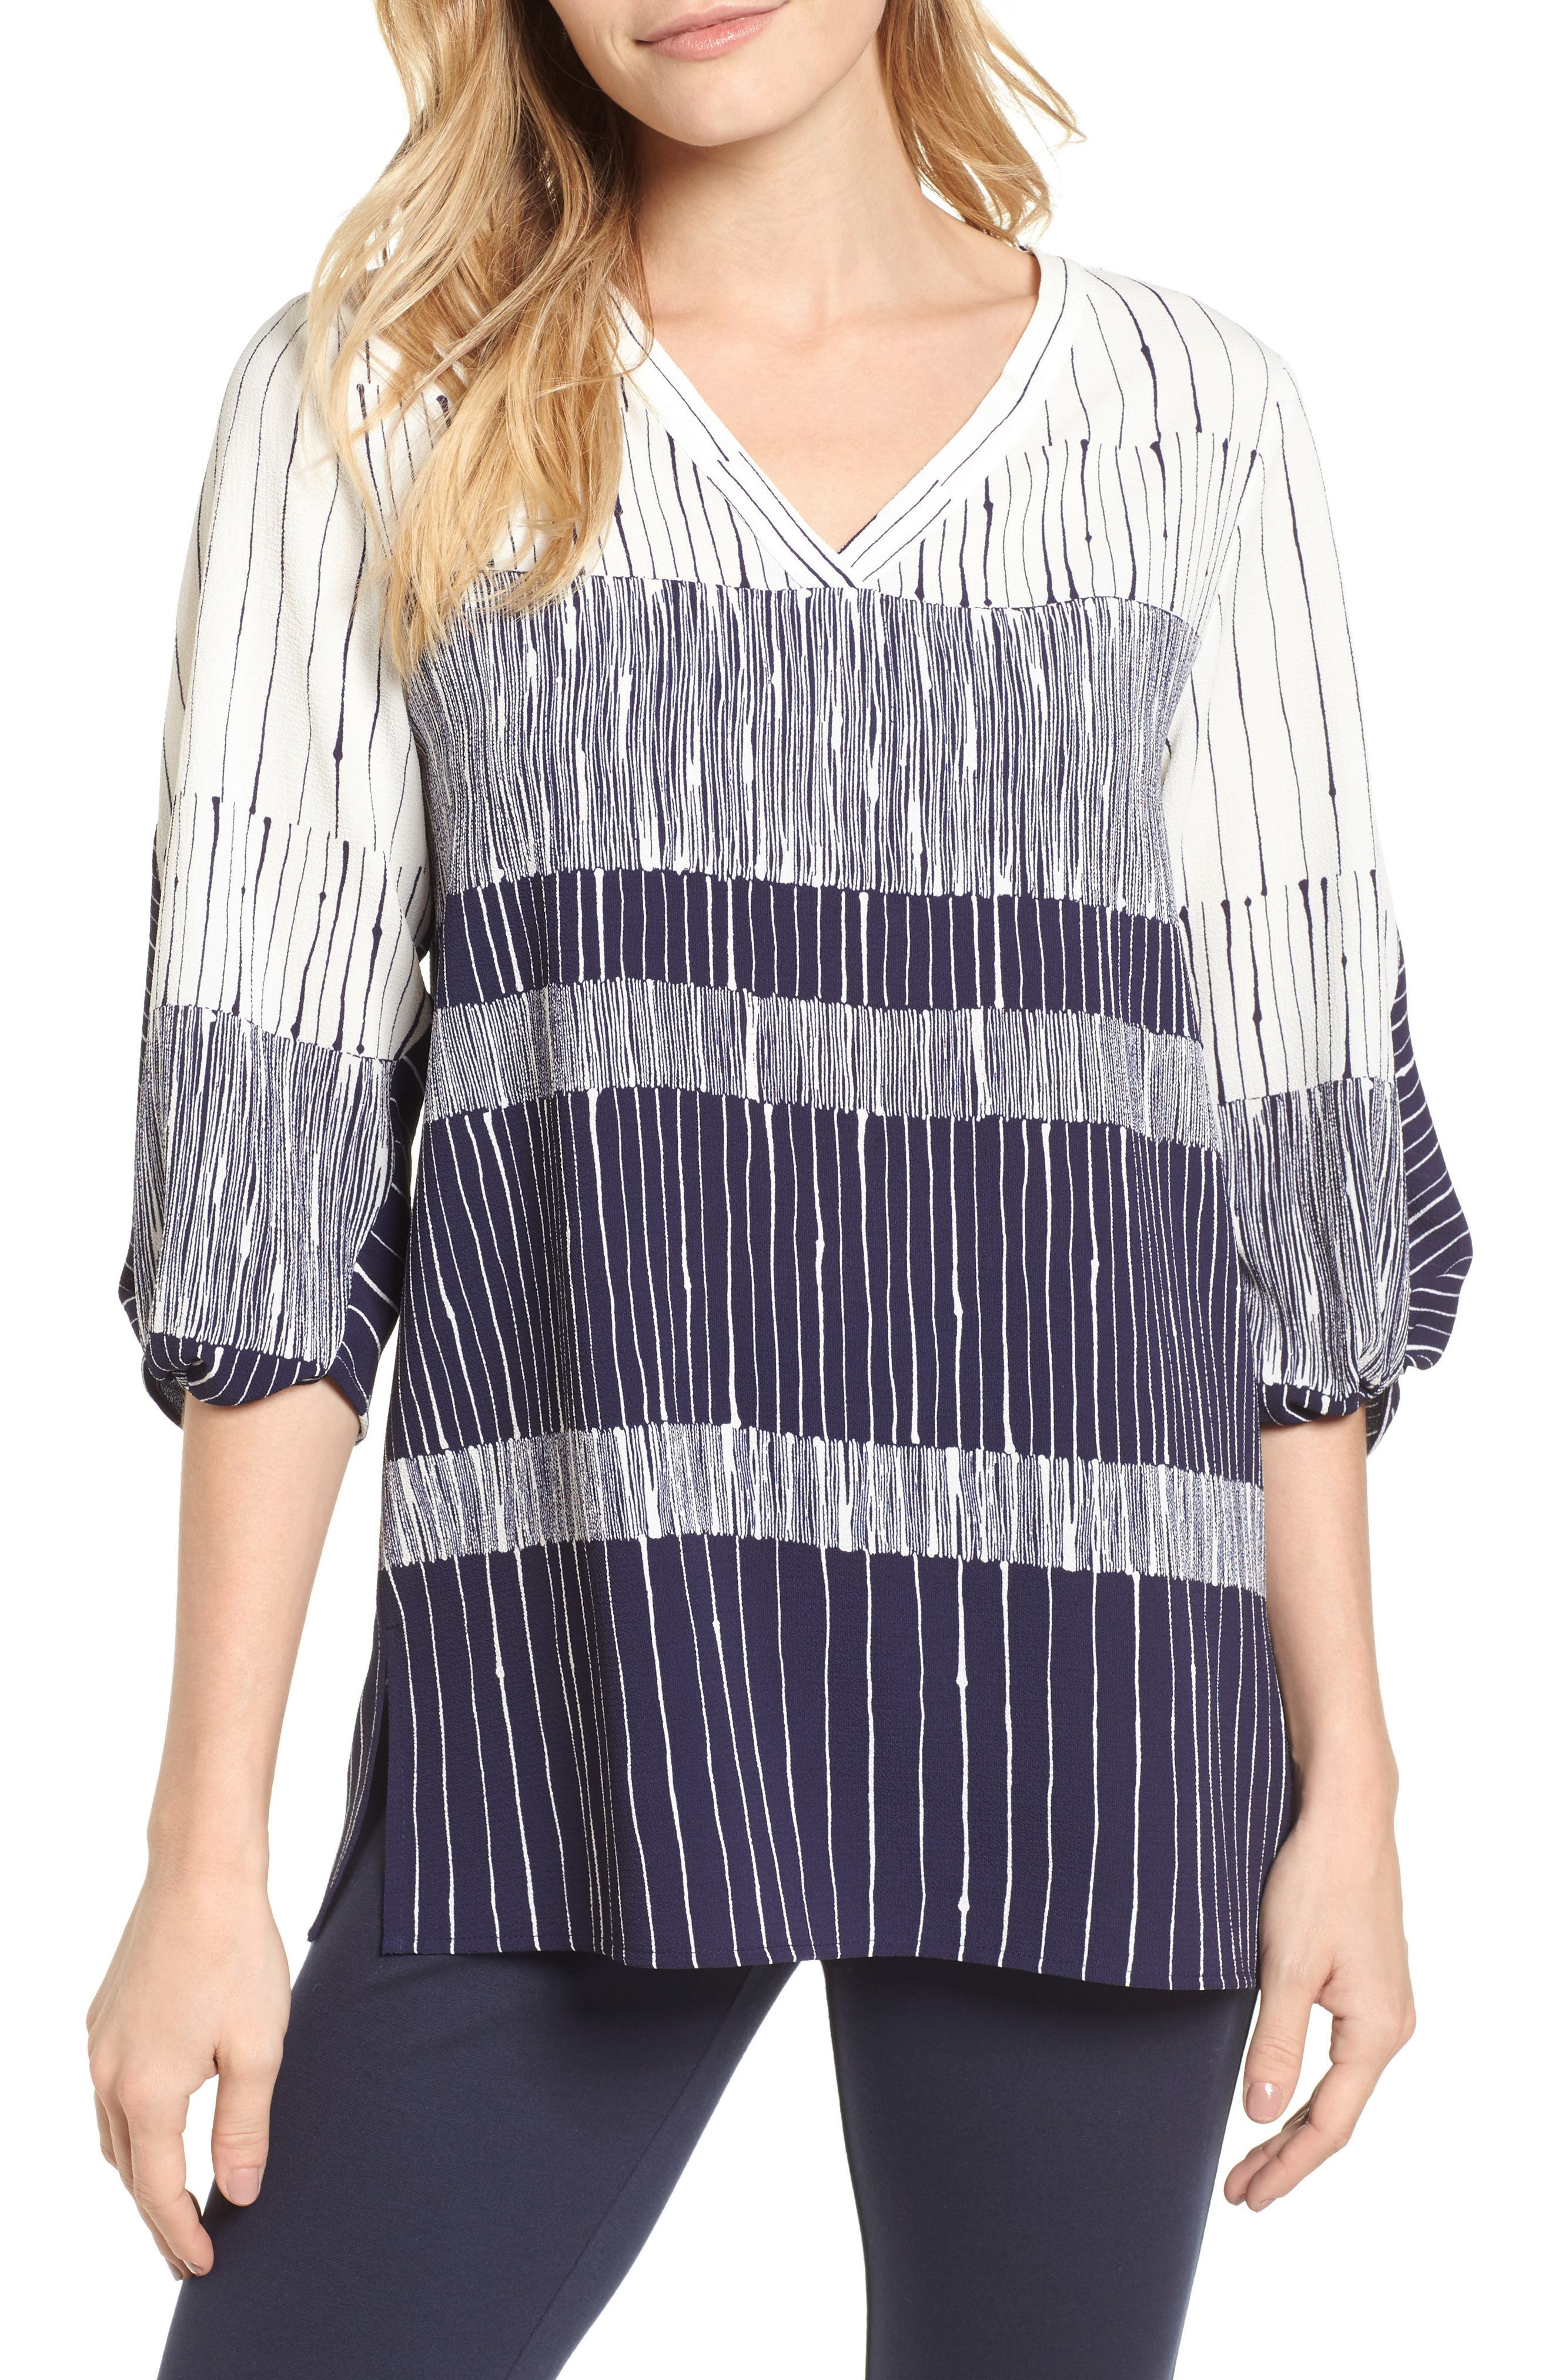 Ink Lines Blouse,                         Main,                         color, 400